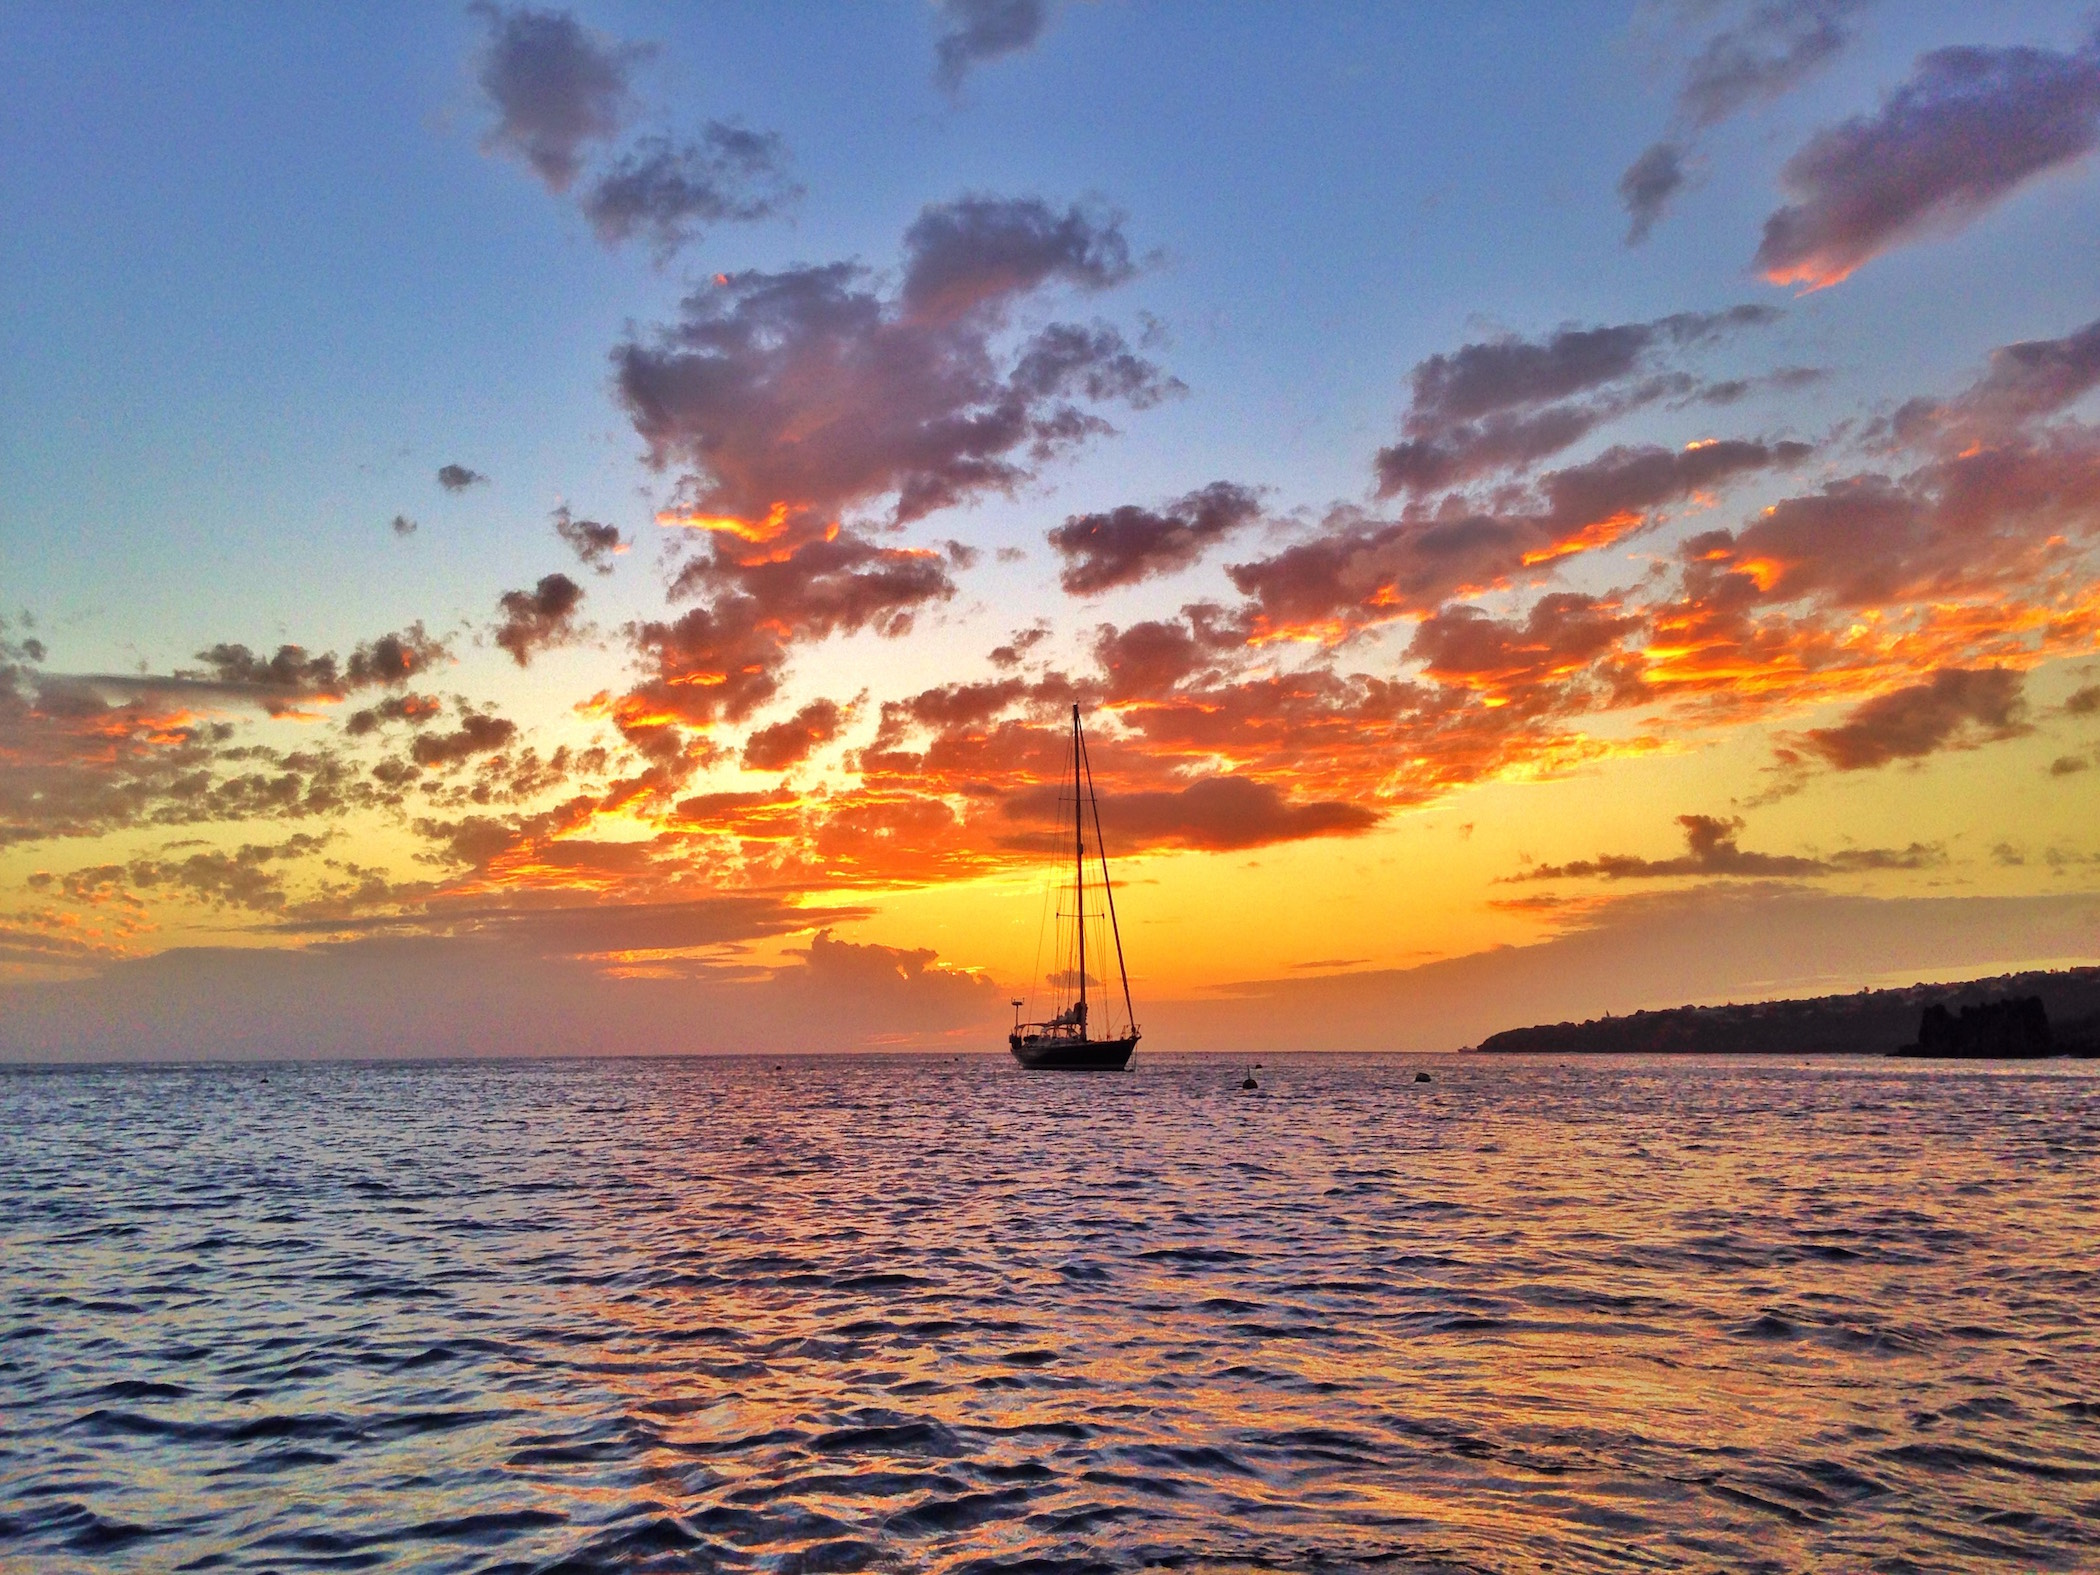 Isbjorn in St. Vincent, one of the many amazing sunsets!